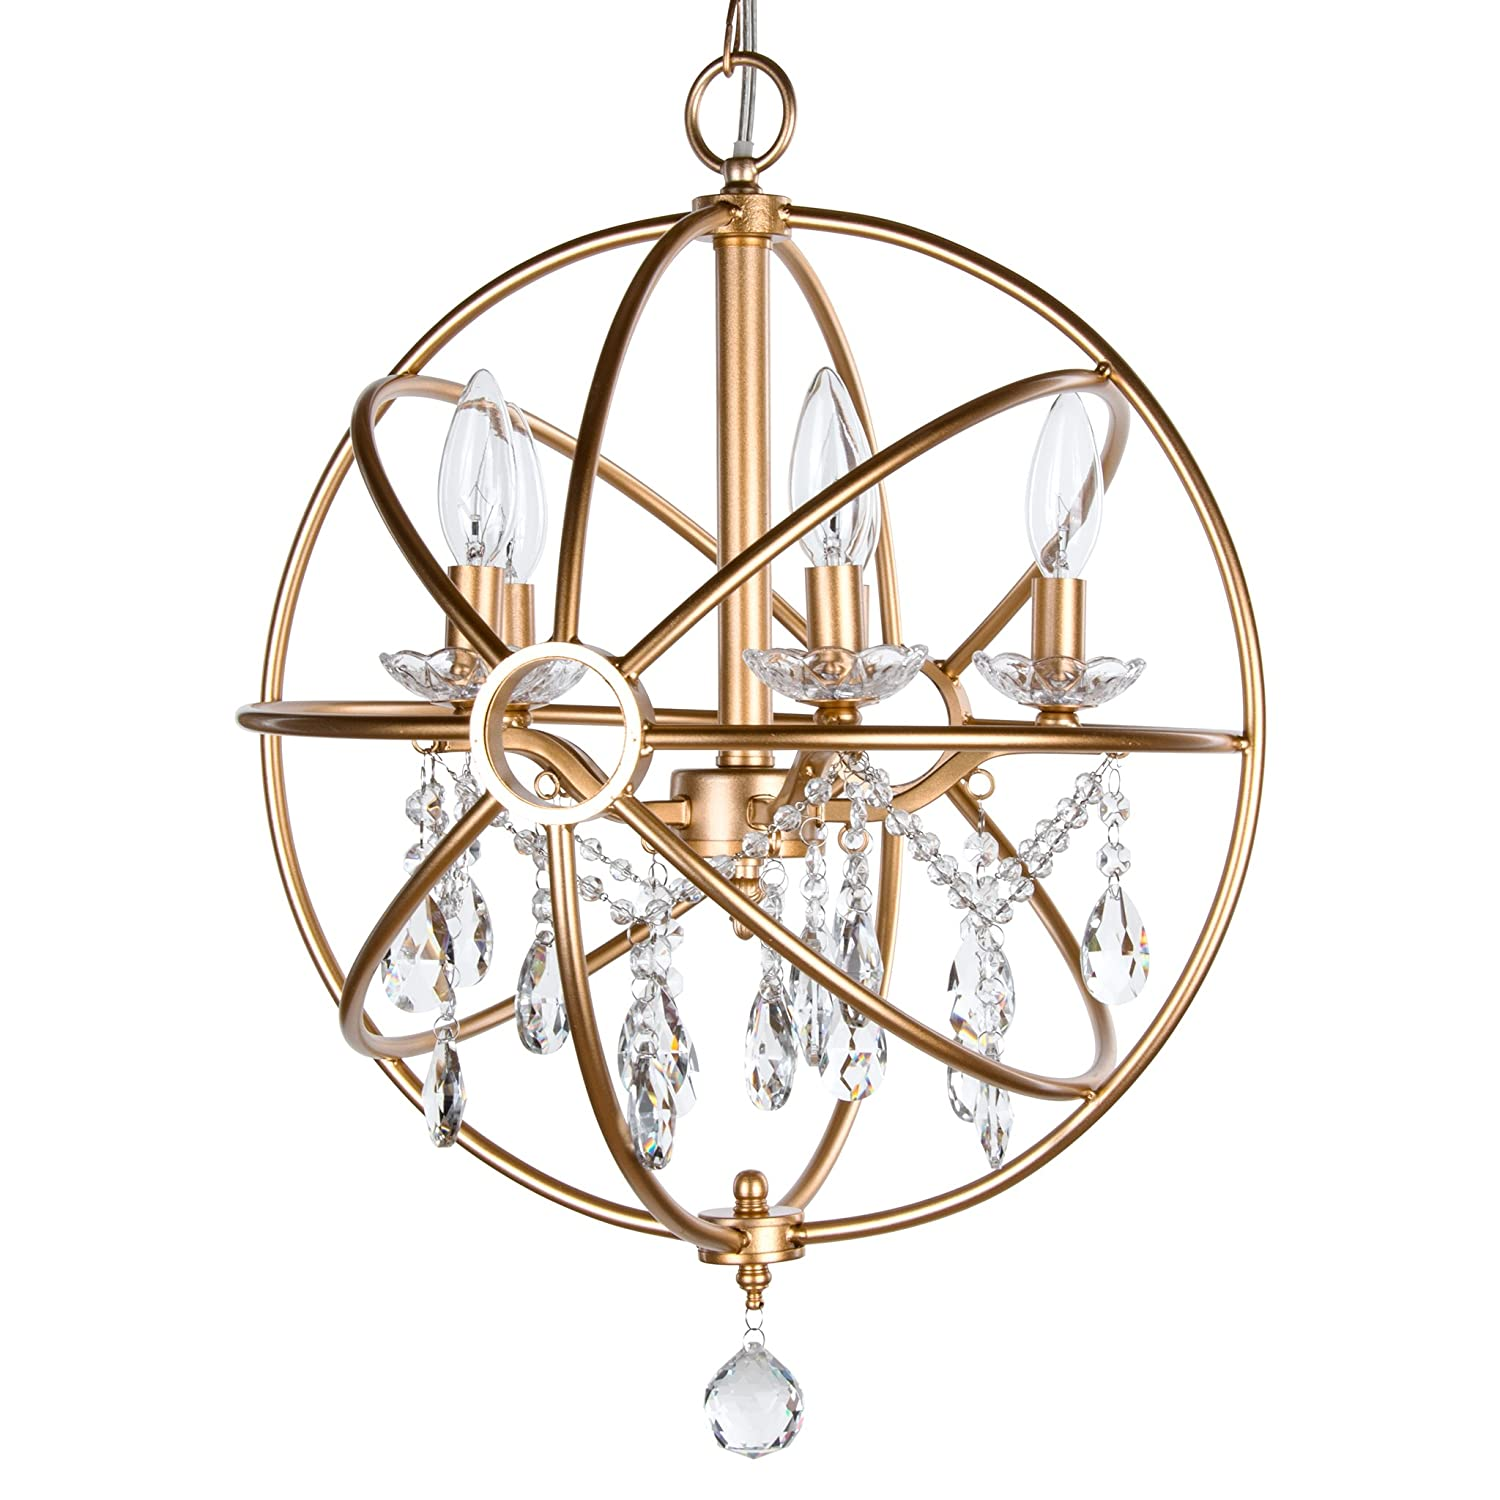 Luna Collection Modern Orb Crystal Swag Chandelier With 5 Lights, Sphere Glass Pendant Ceiling Lighting Fixture (Gold)